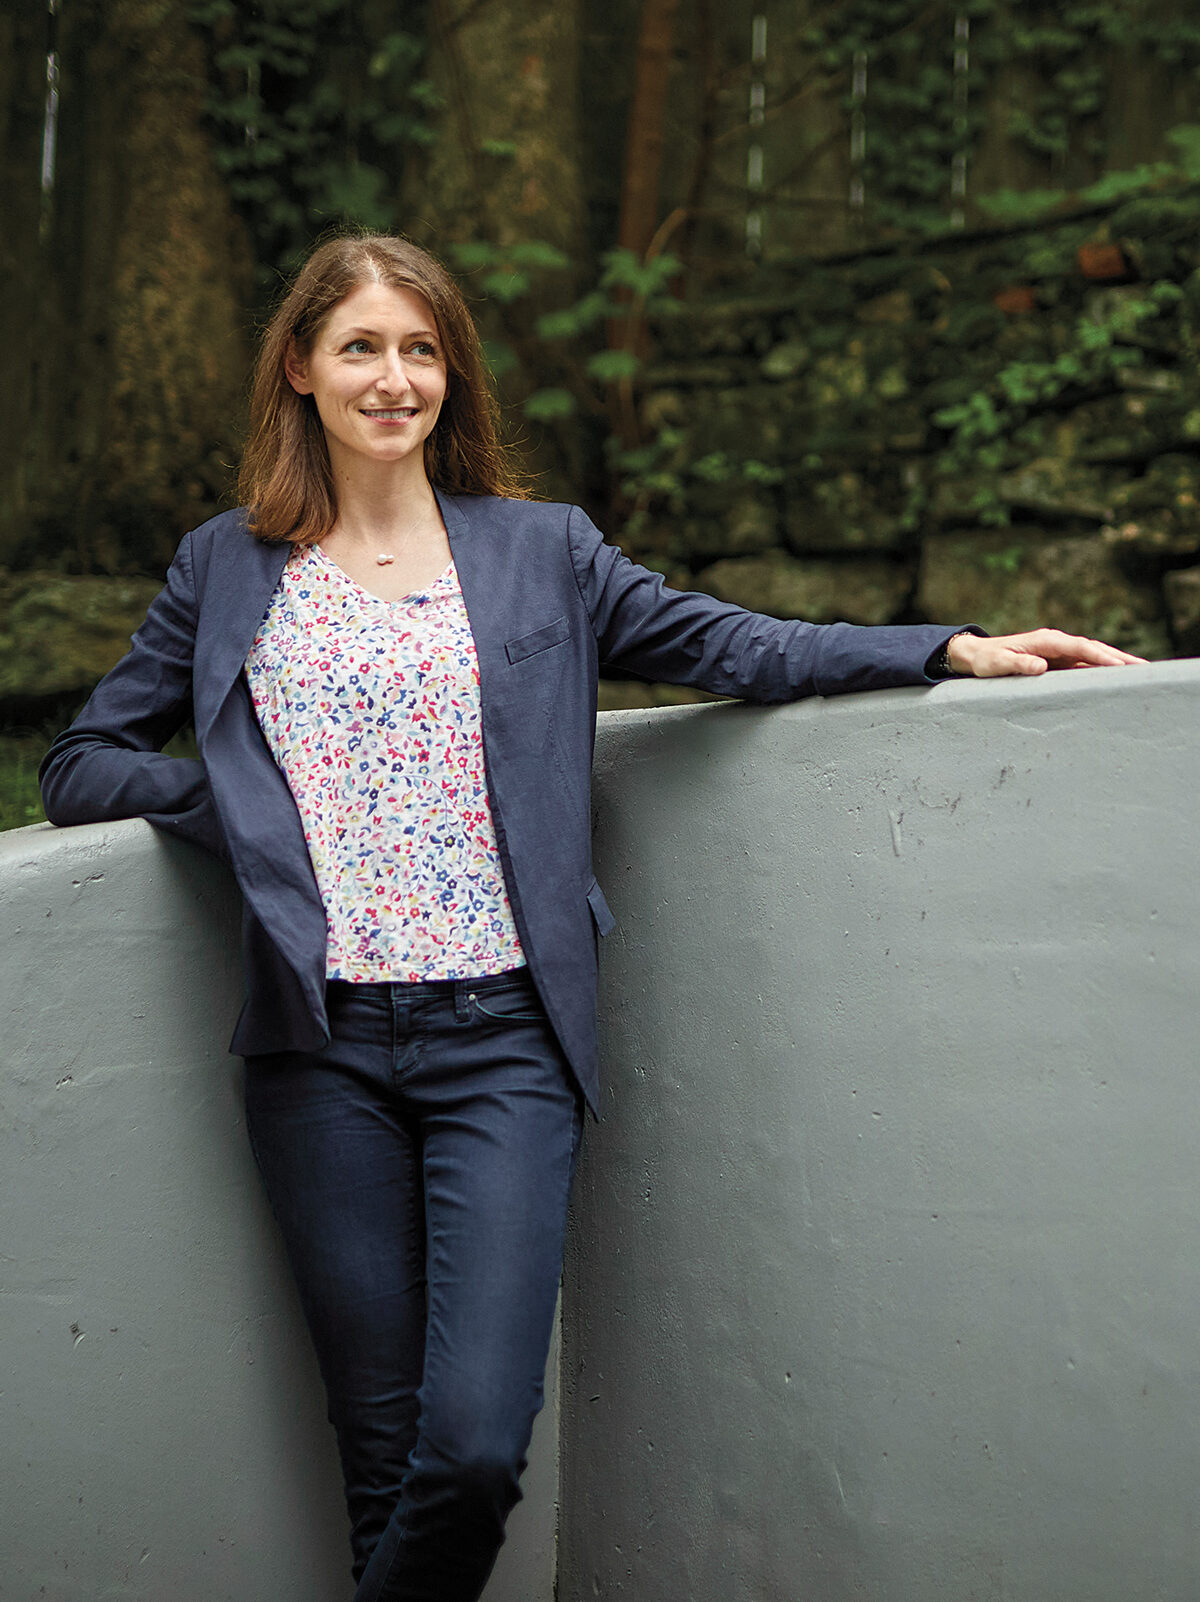 Nora Kory stands in a wooded area by a short concrete wall, resting one elbow on one side, and extending her arm on the other. She wears jeans, a multicolored shirt and a dark blue blazer.